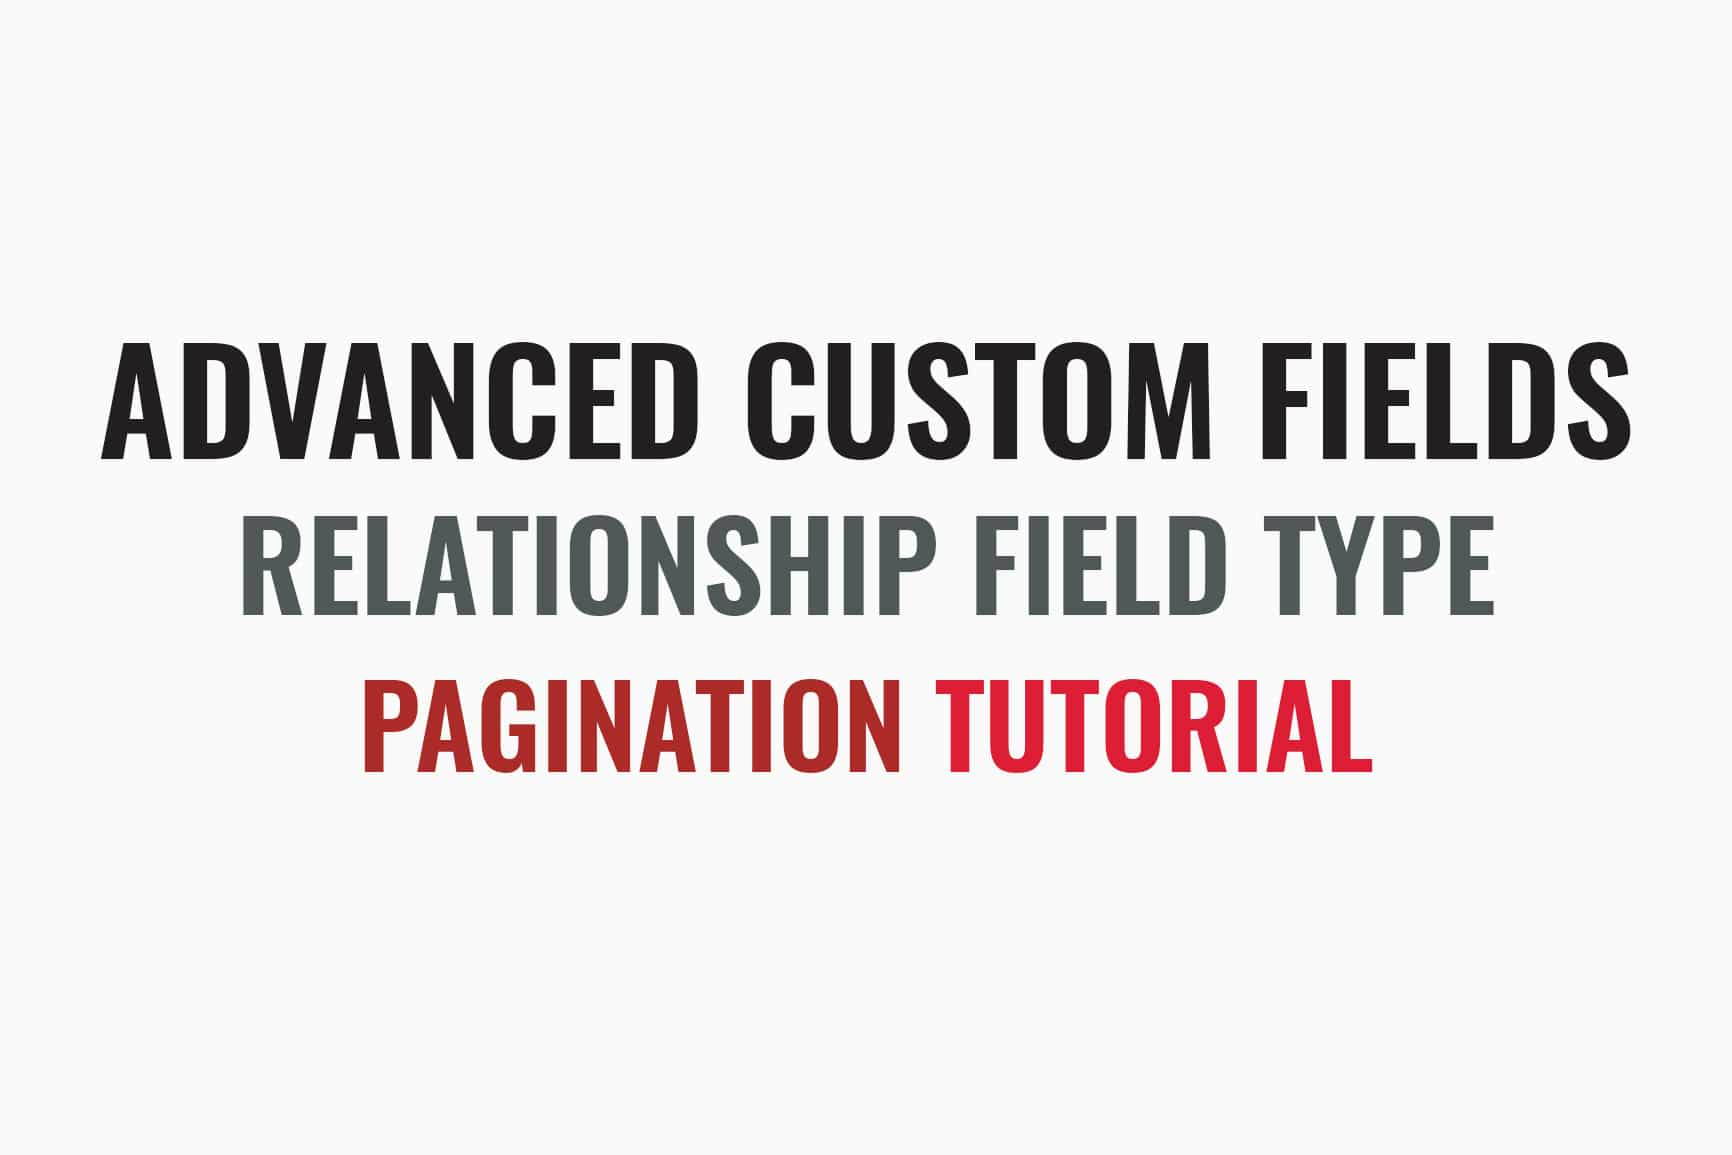 Advanced Custom Fields Pagination